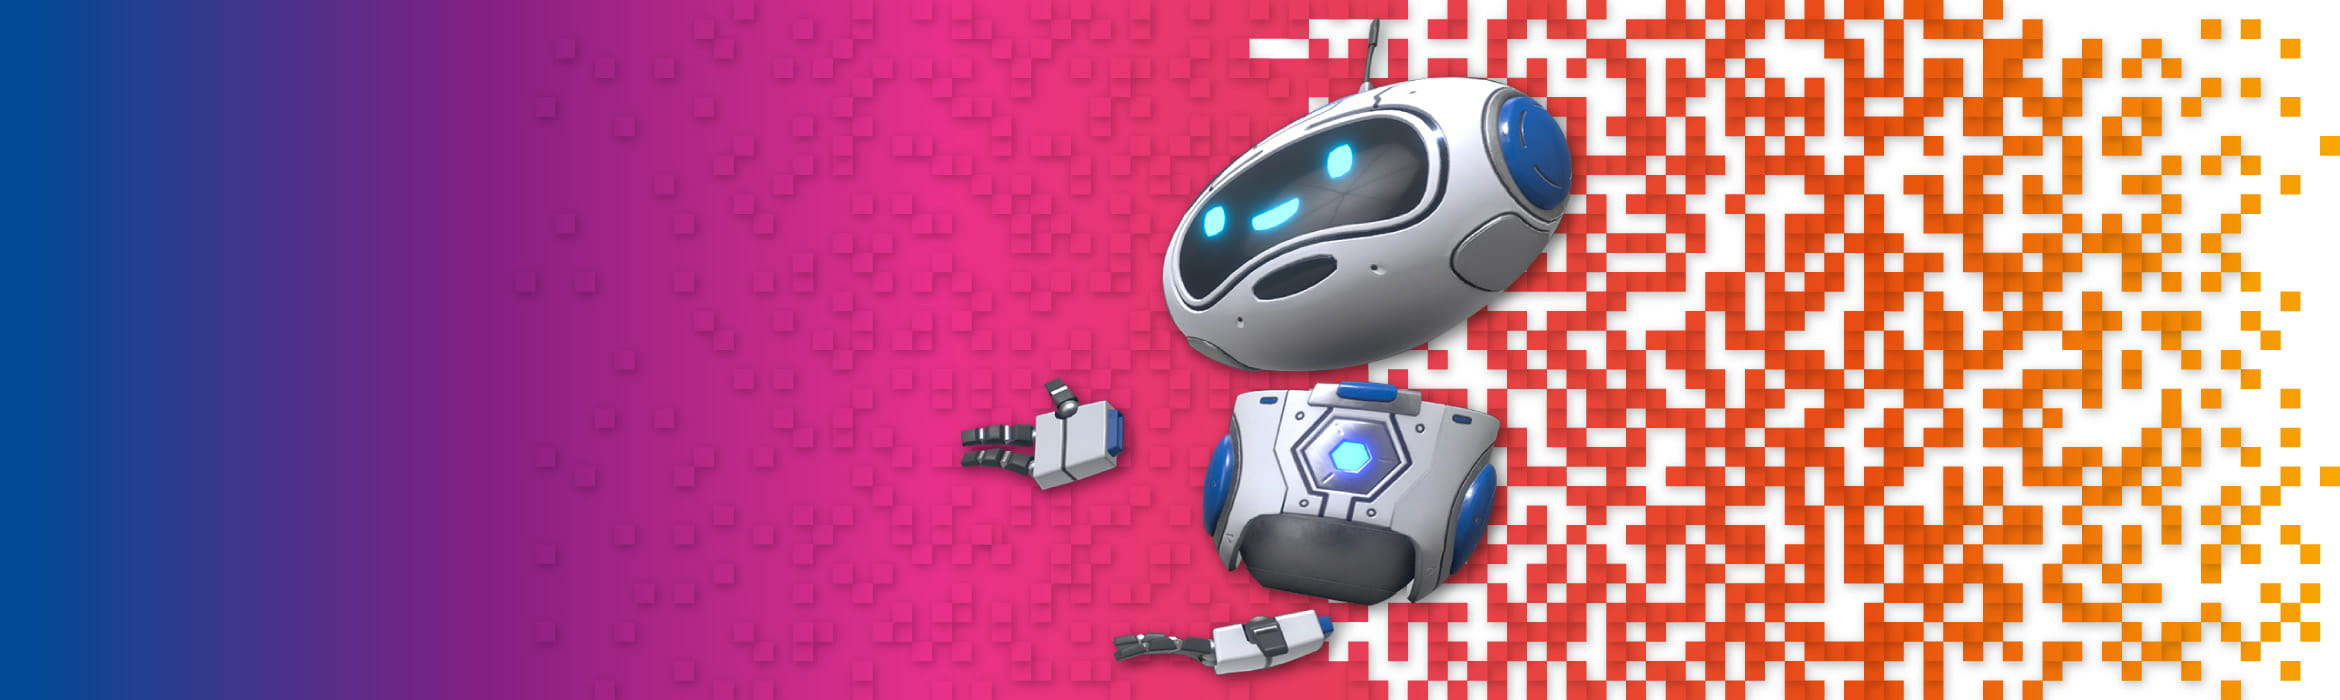 Colourful background with little robot avatar